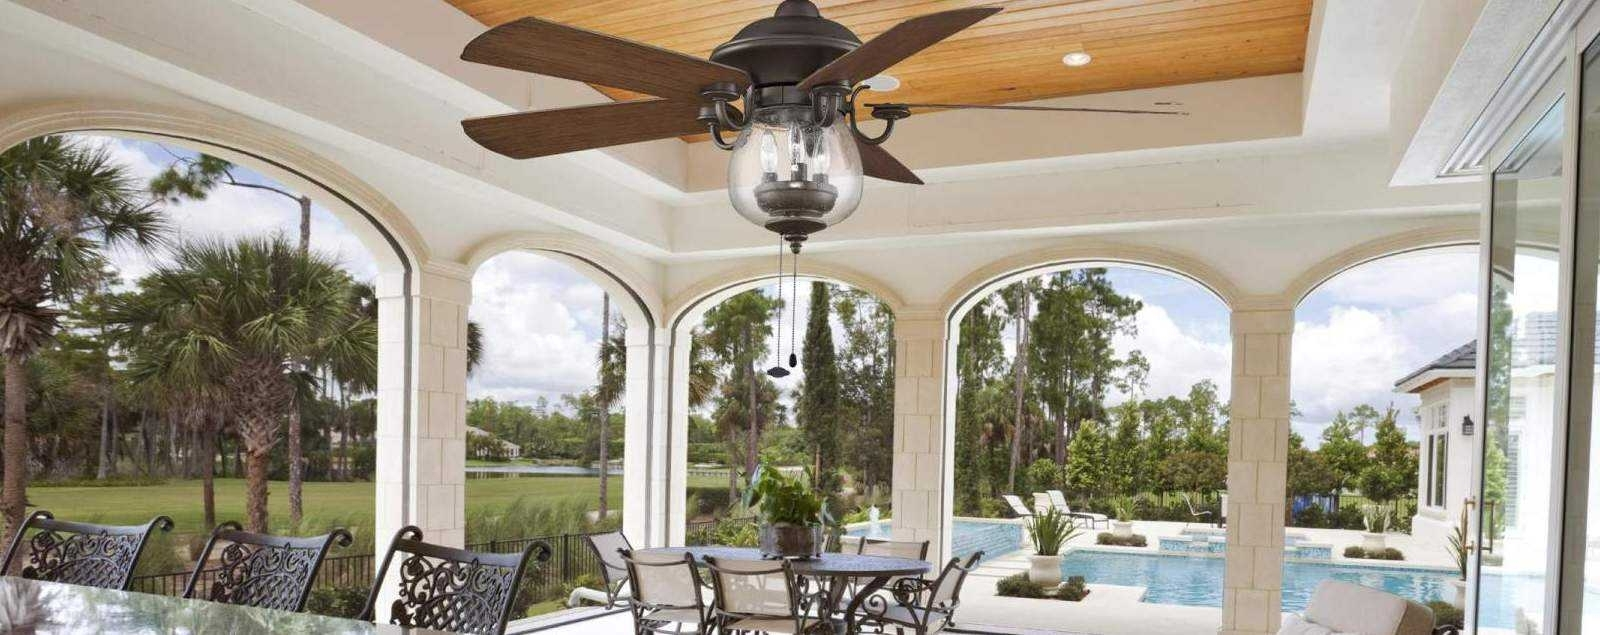 Recent Patio Ceiling Fans With Lights Images Also Enchanting Porch Outside Pertaining To Outdoor Patio Ceiling Fans With Lights (View 17 of 20)